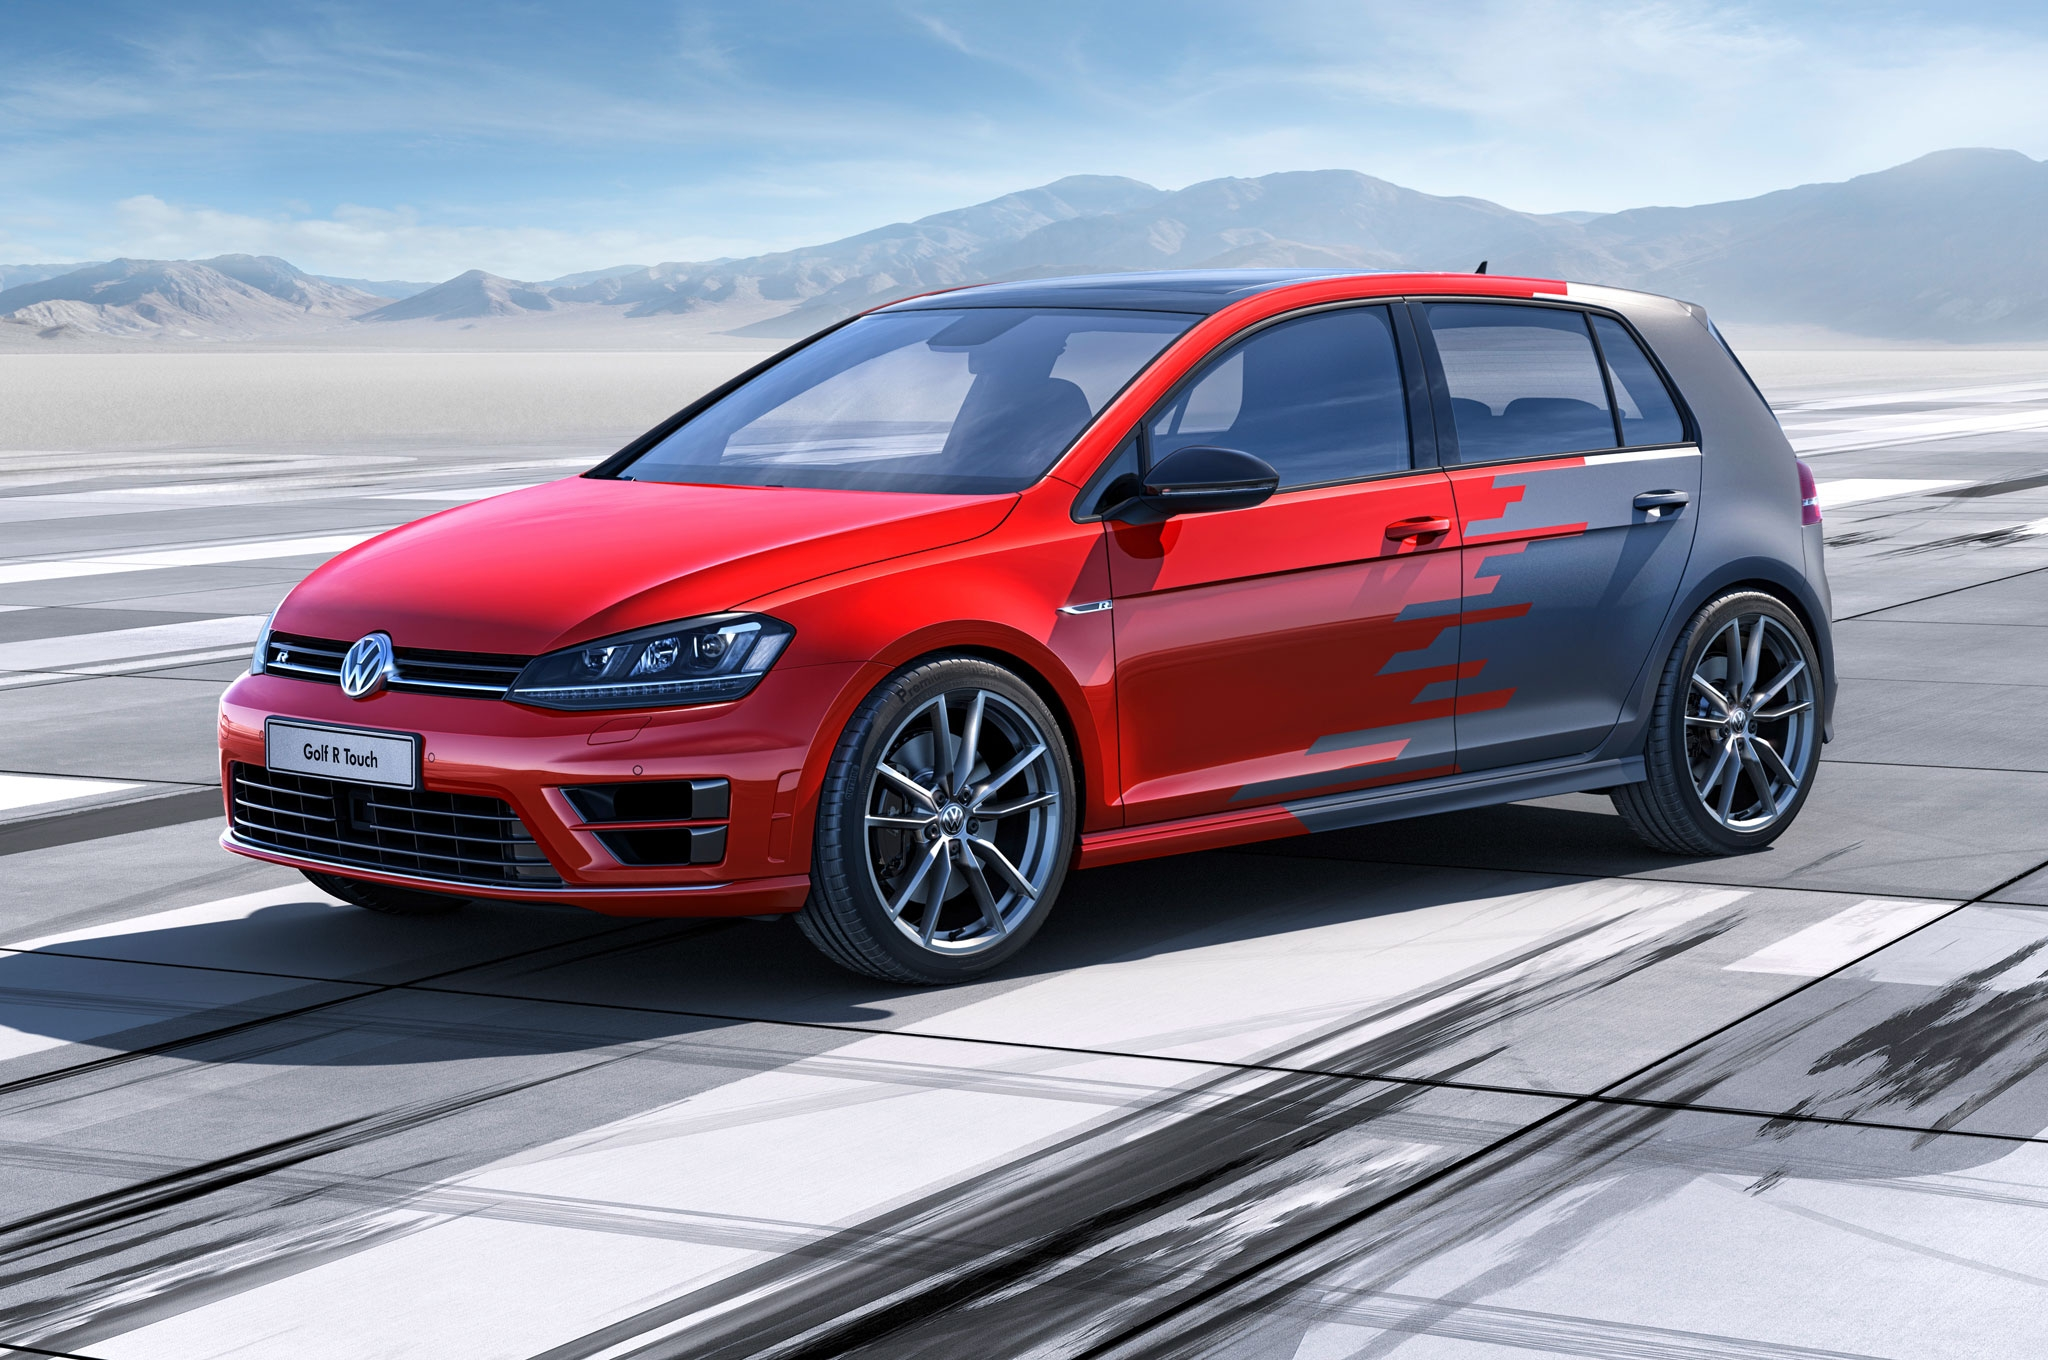 vw-golf-r-touch-gesture-control-car